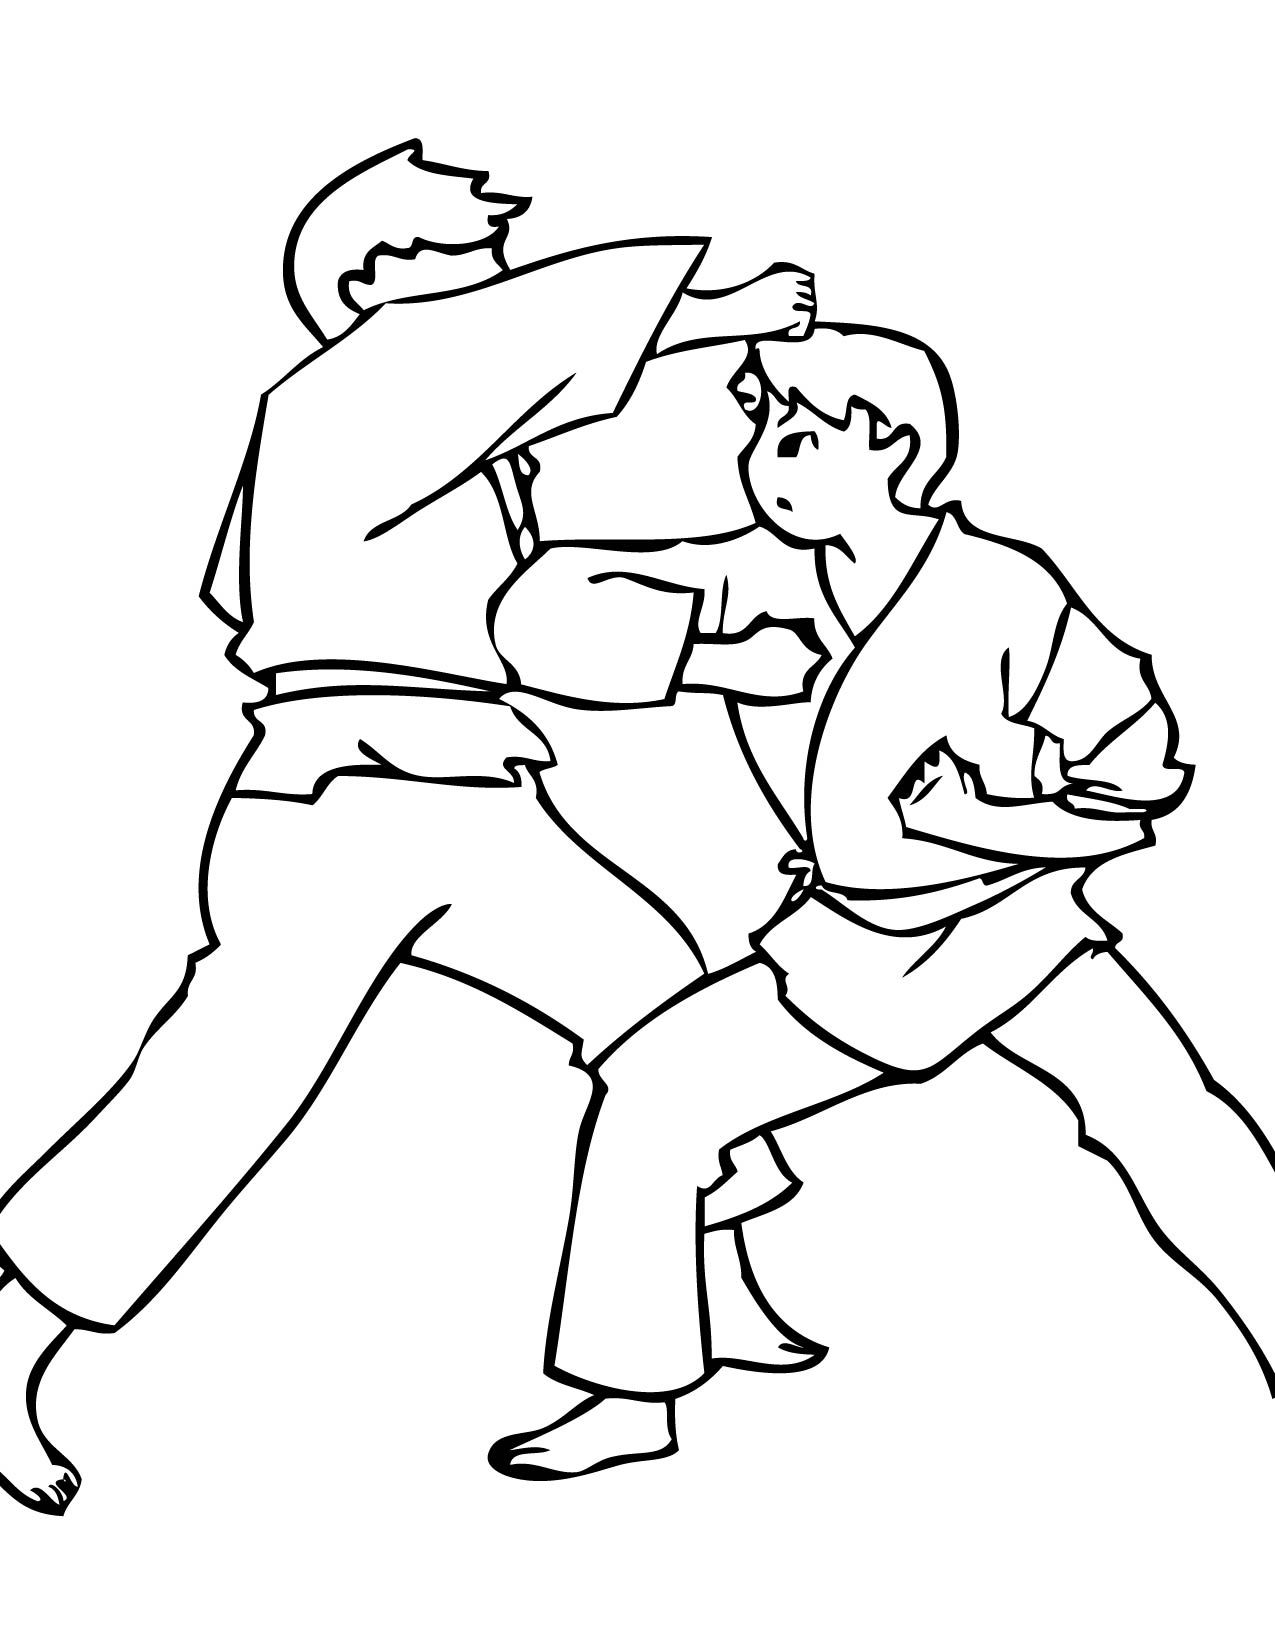 Martial Arts Coloring Pages In 2021 Coloring Pages Sports Coloring Pages Love Coloring Pages